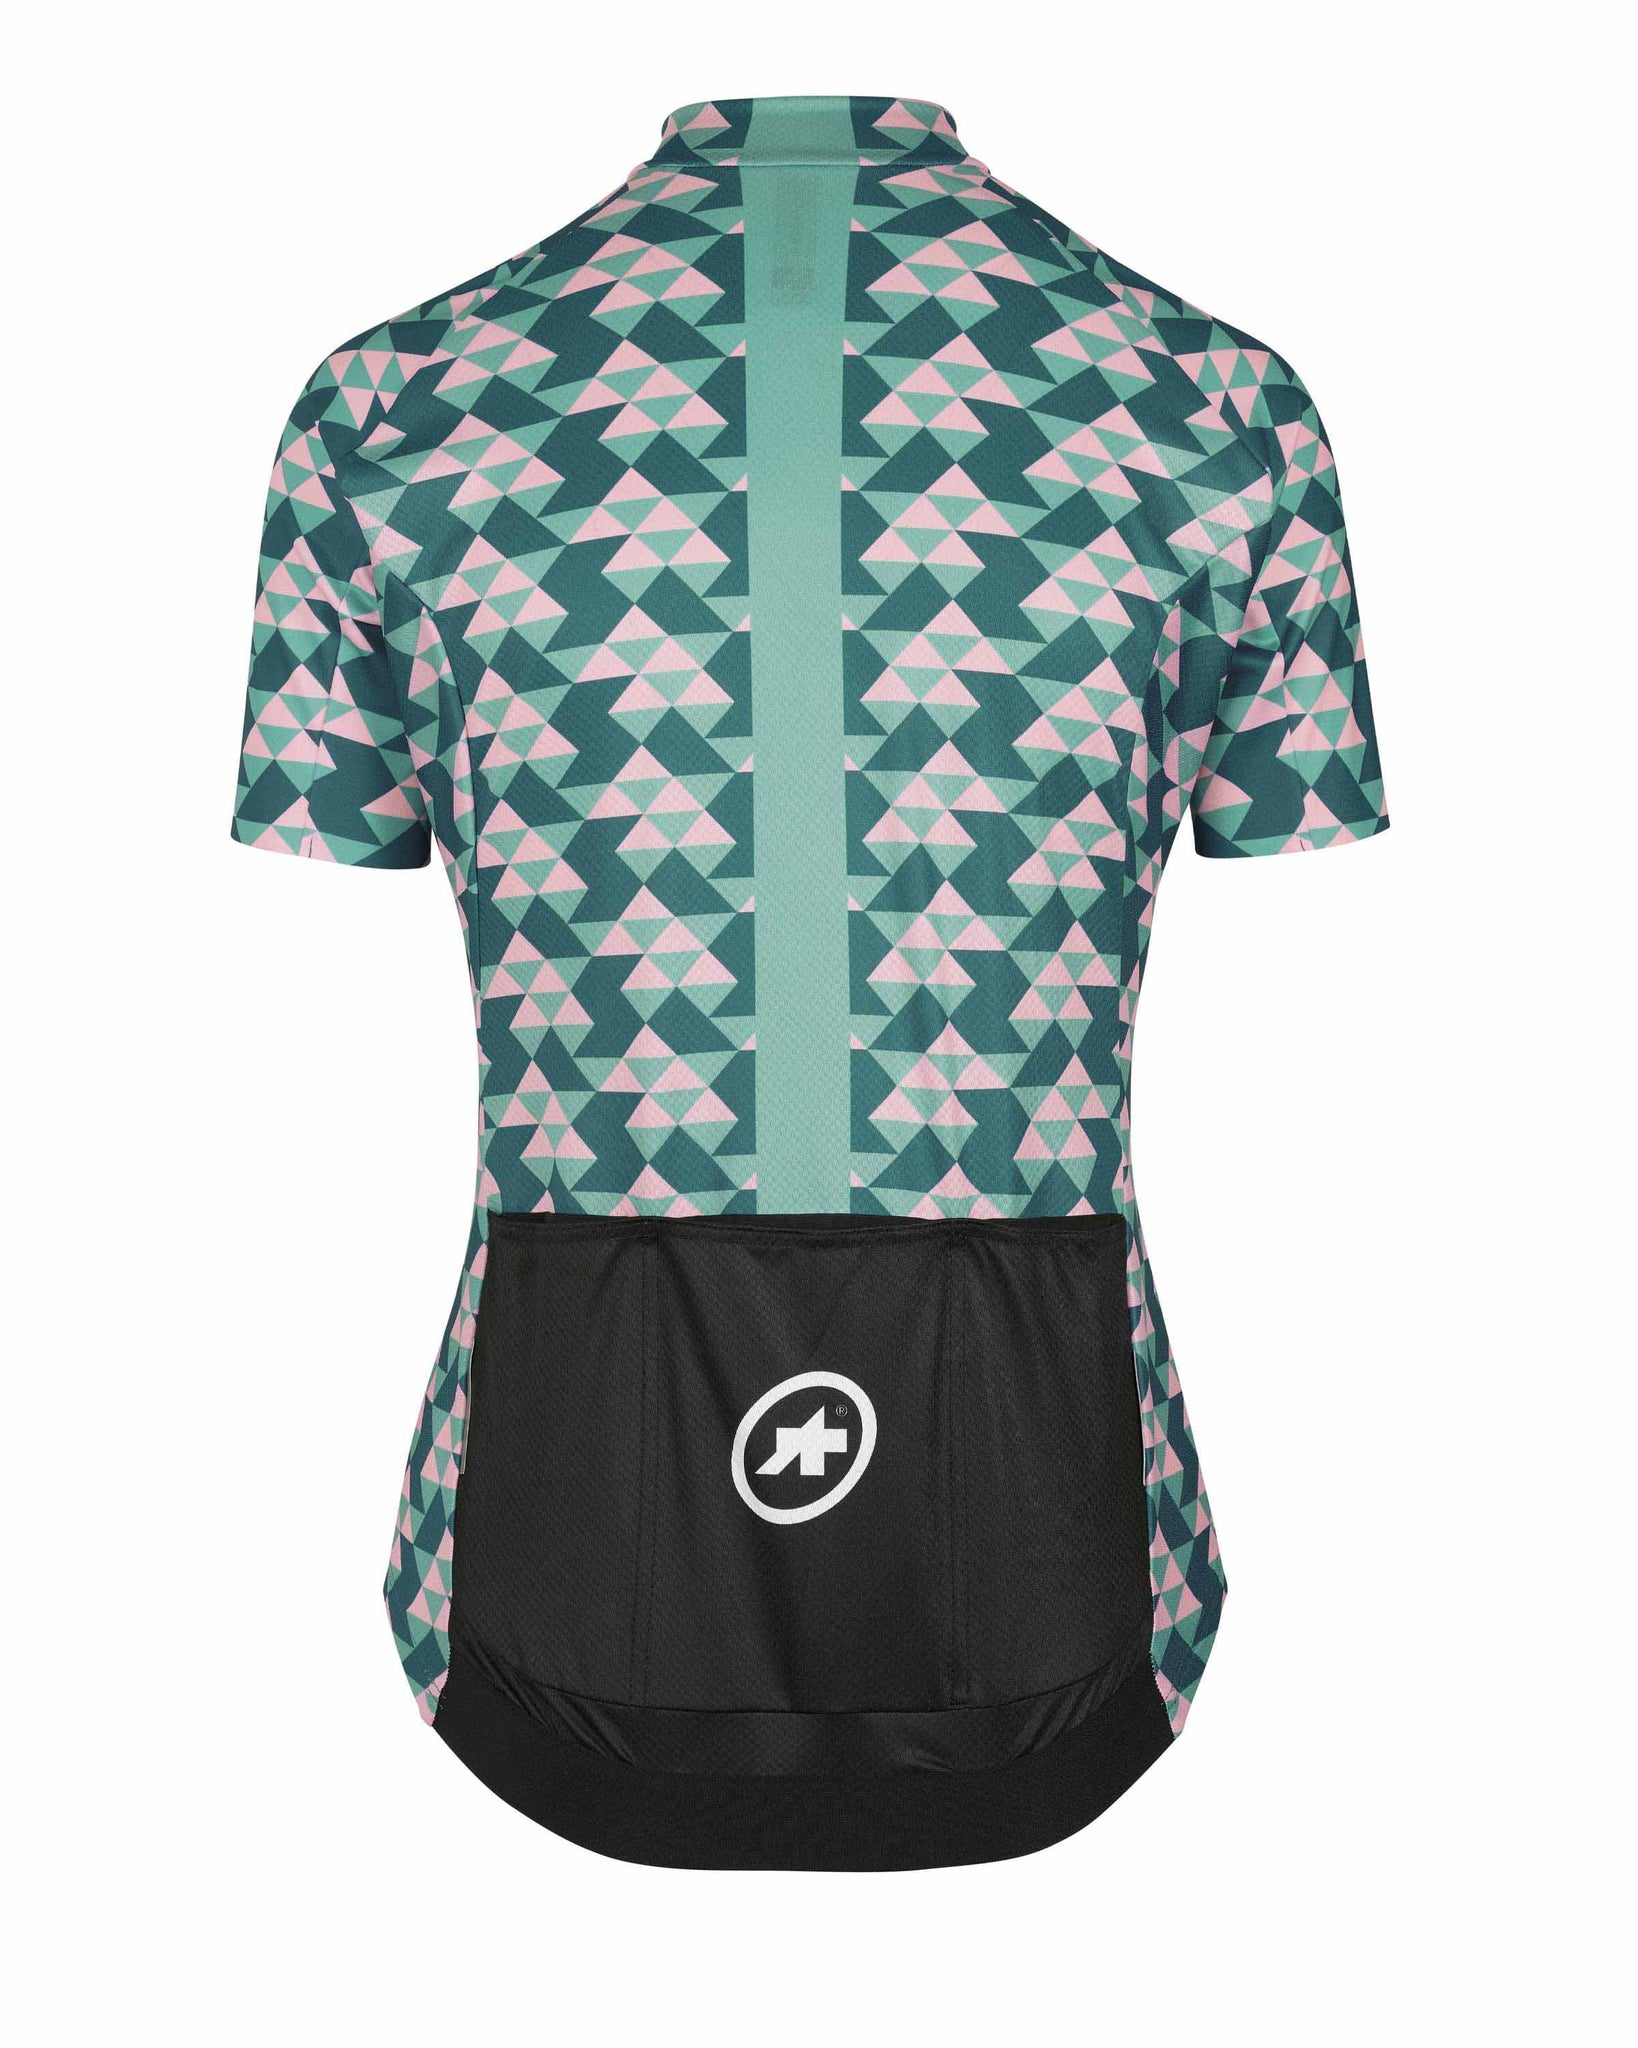 再値下げ【ASSOS / アソス】DIAMOND CRAZY WOMEN'S SS JERSEY brilliant green(レディース 半袖ジャージ)